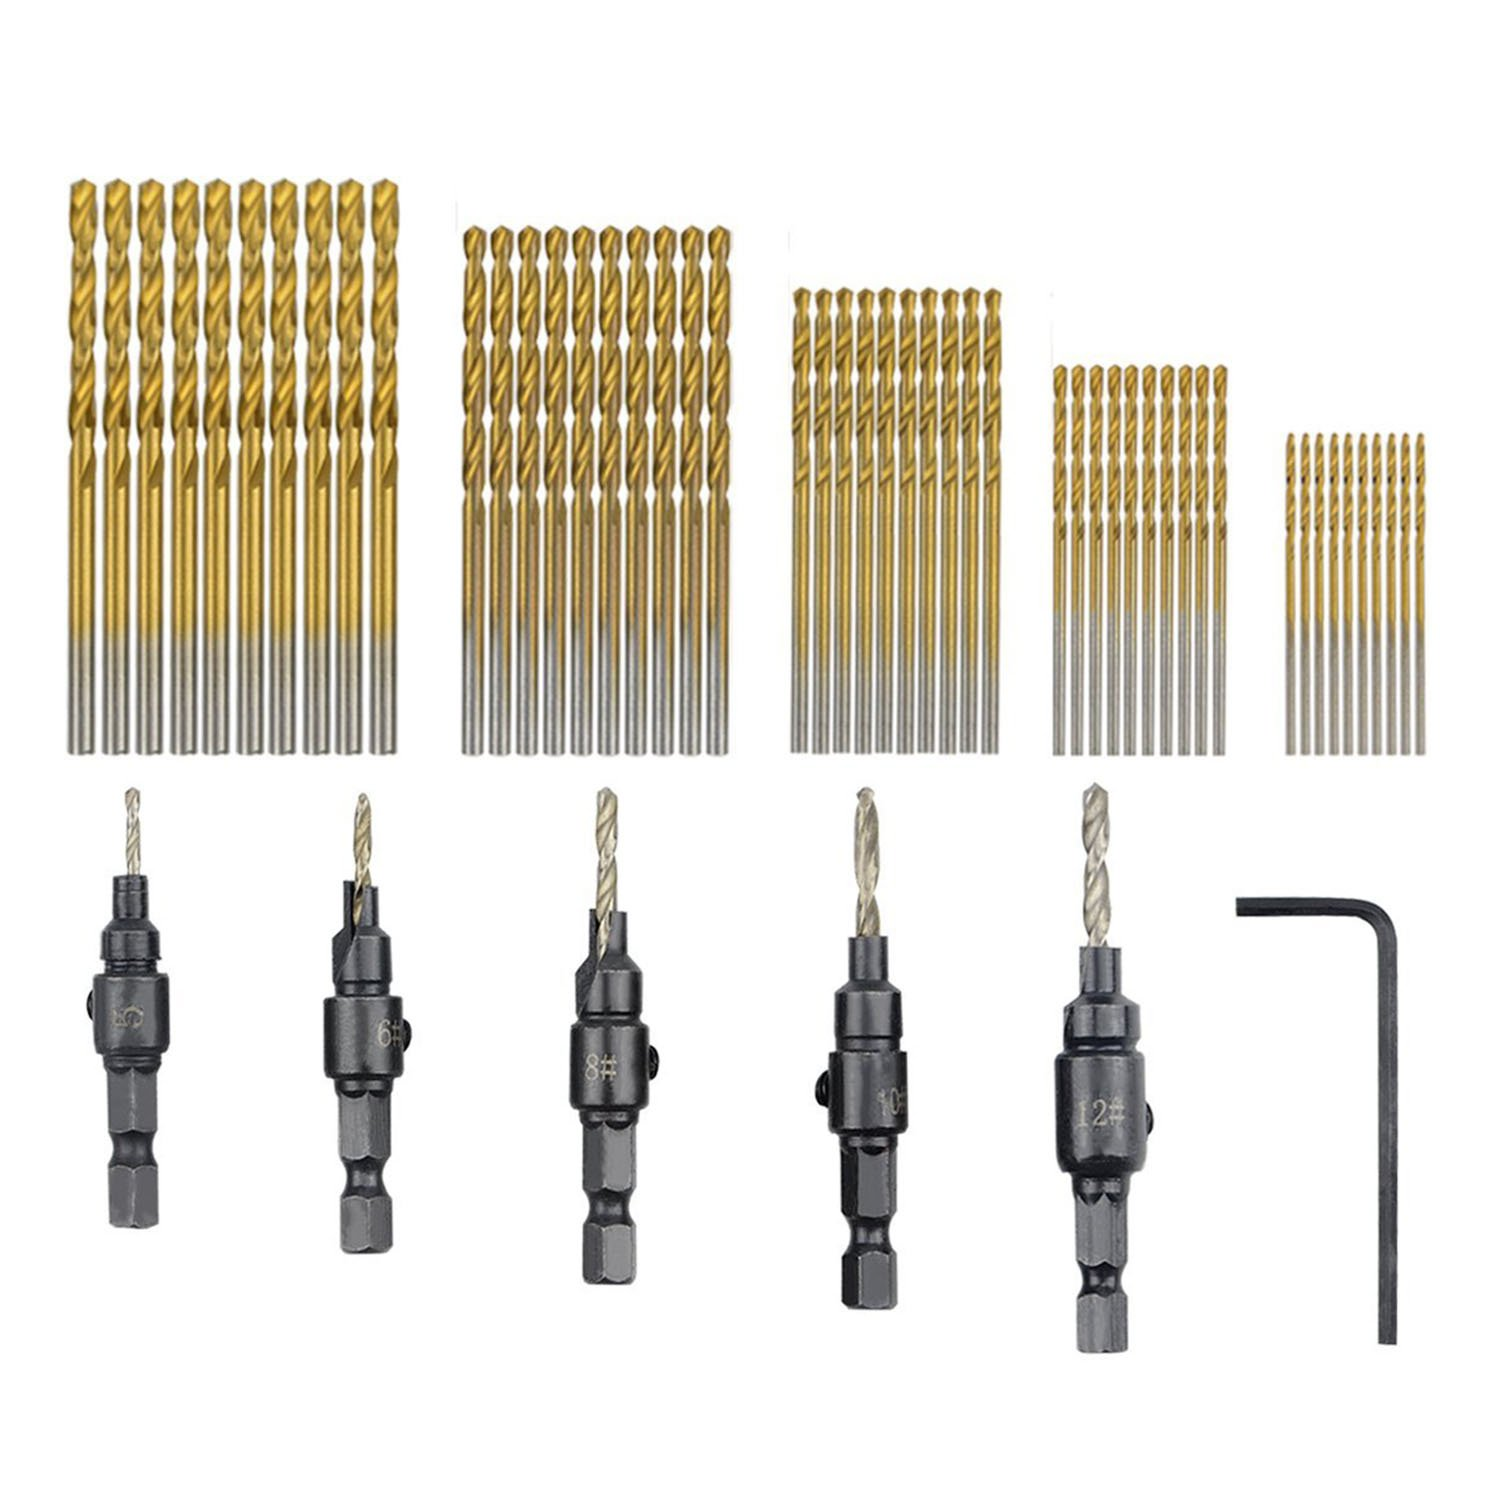 TOOGOO 55 PCS HSS 4241 Countersink Cone Drill Bit Set and High Speed Steel HSS Titanium Twist Drill Bits (1 mm-3 mm)